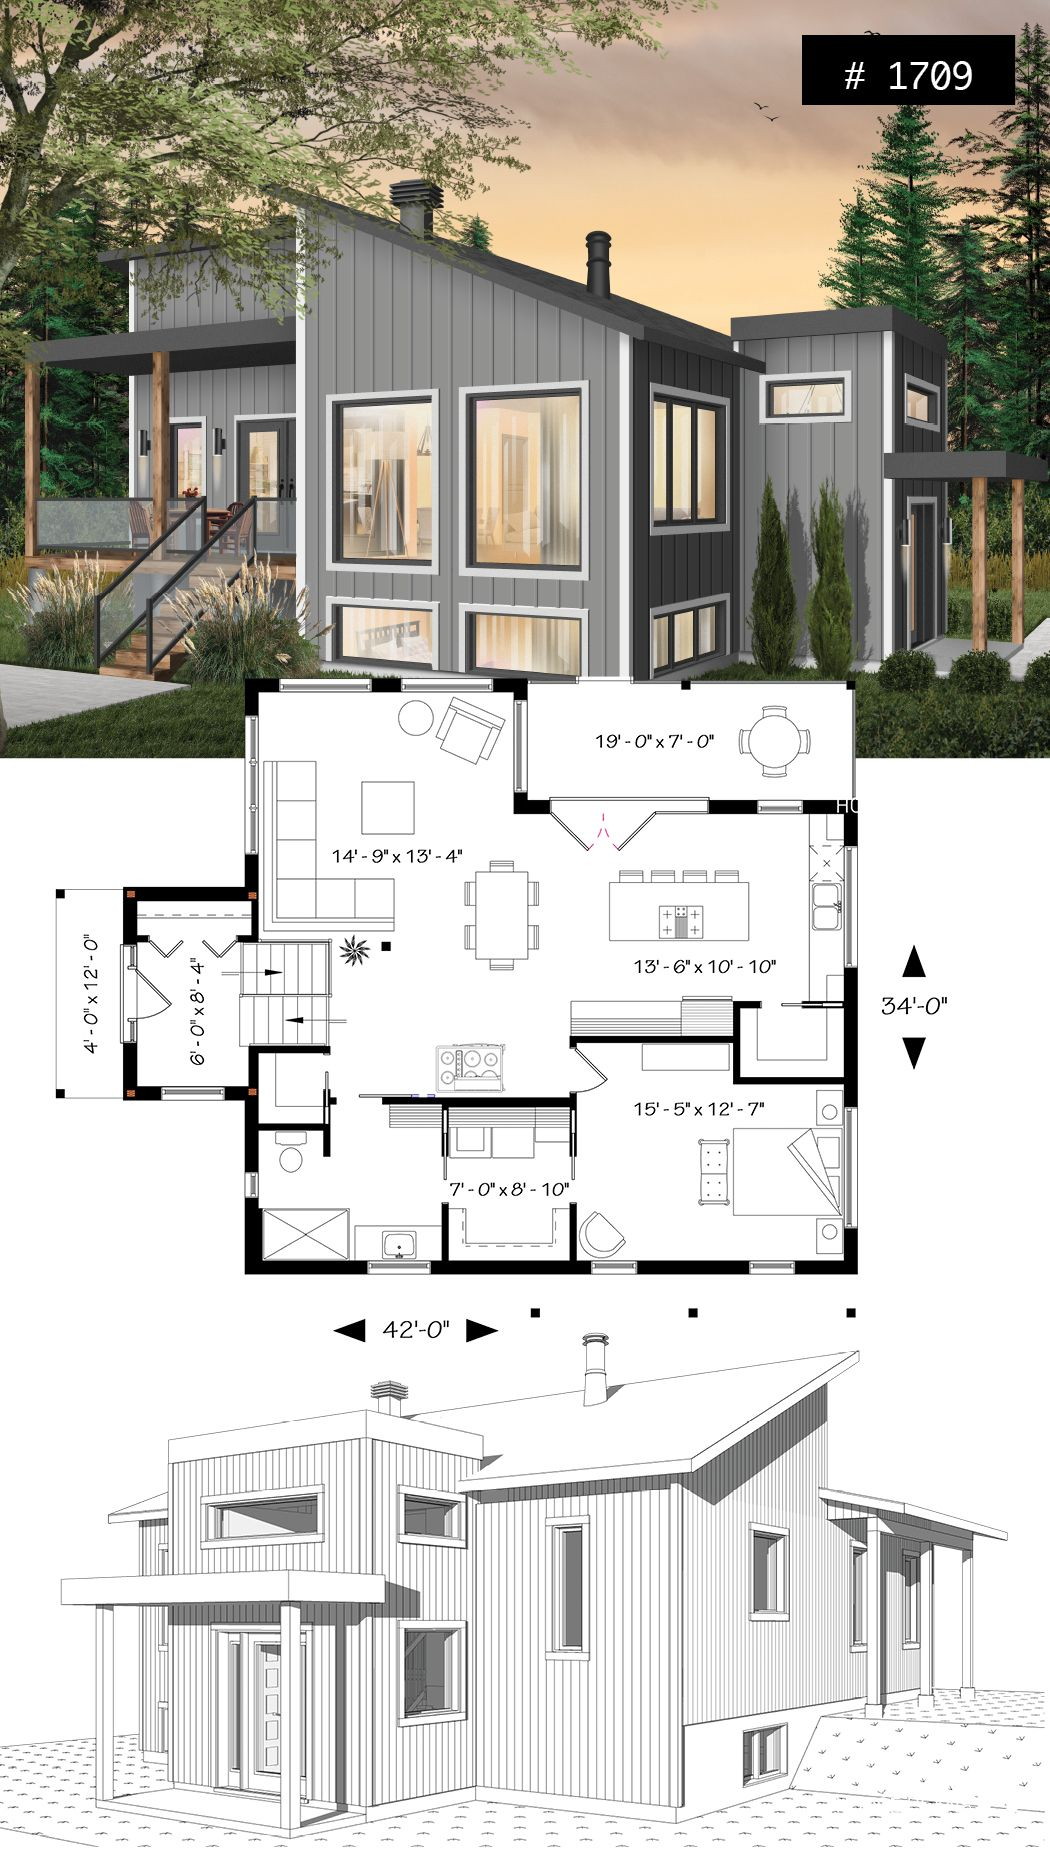 Small modern house plan for corner lot master suite open space huge windows panoramic view